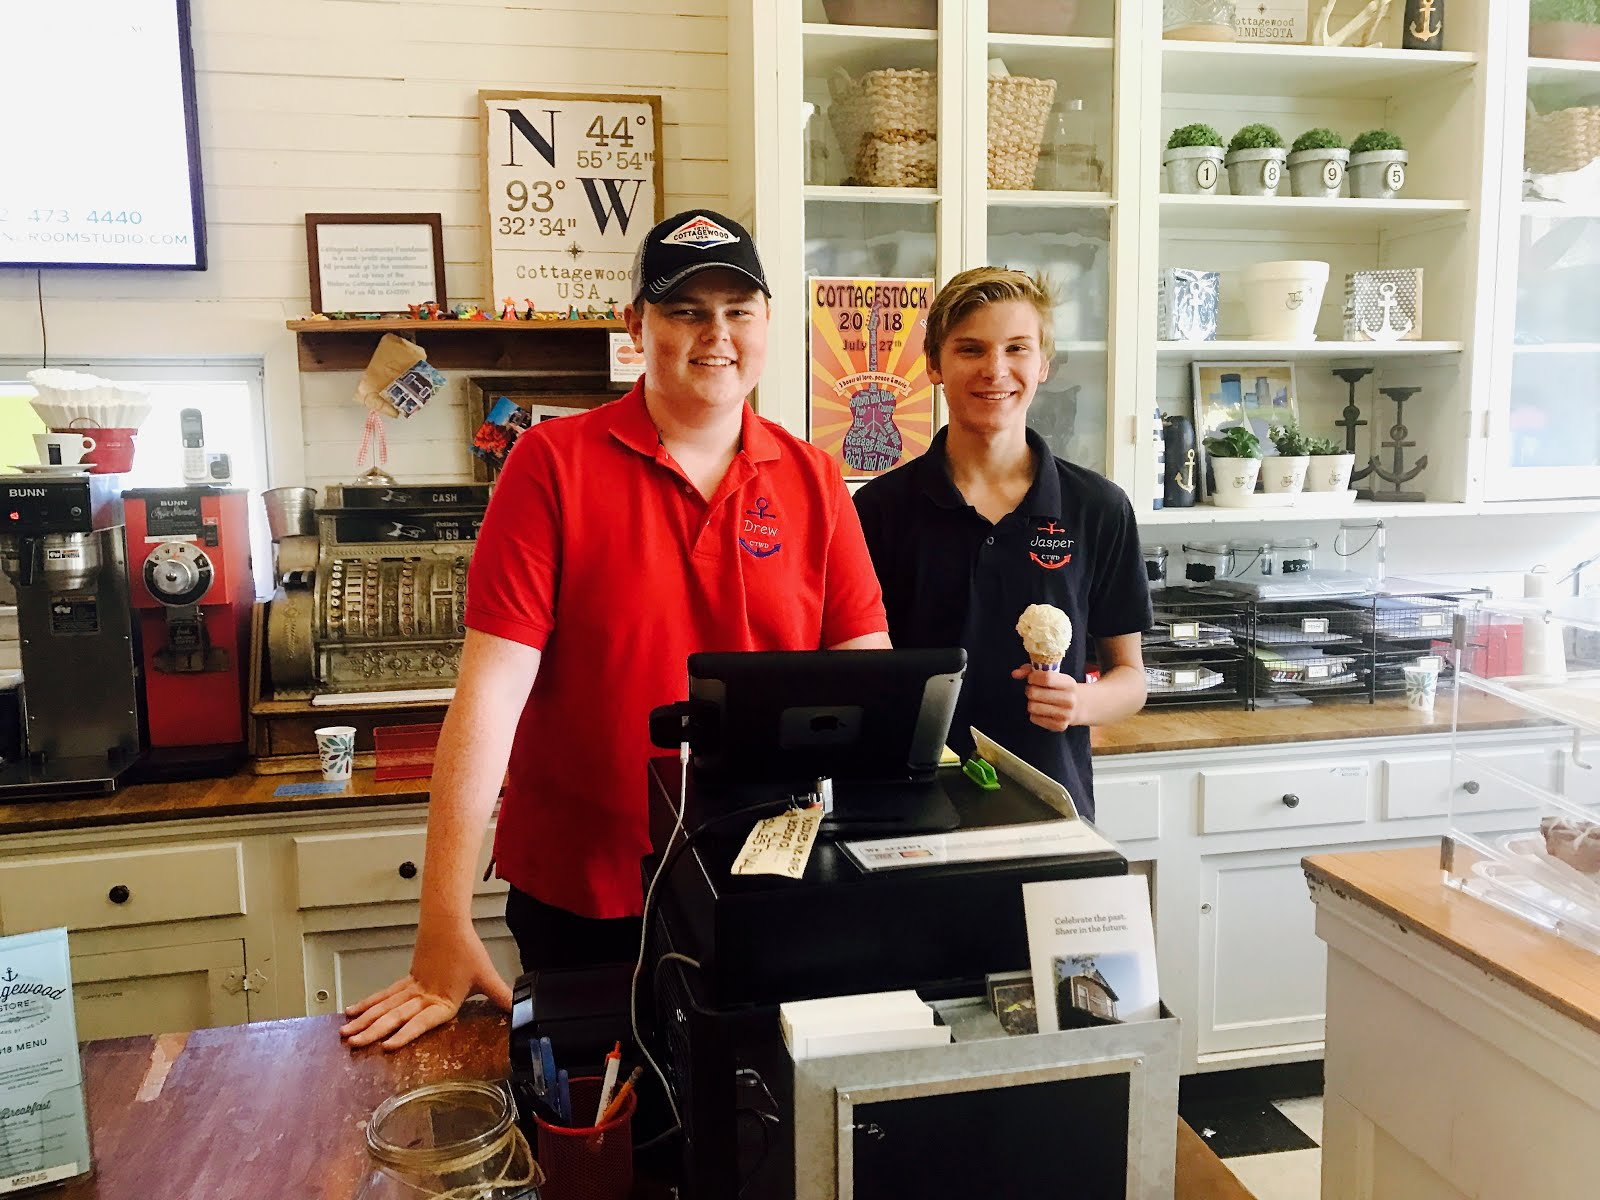 Sweetest ice cream cone in west Metro served with a smile at Cottagewood General Store.